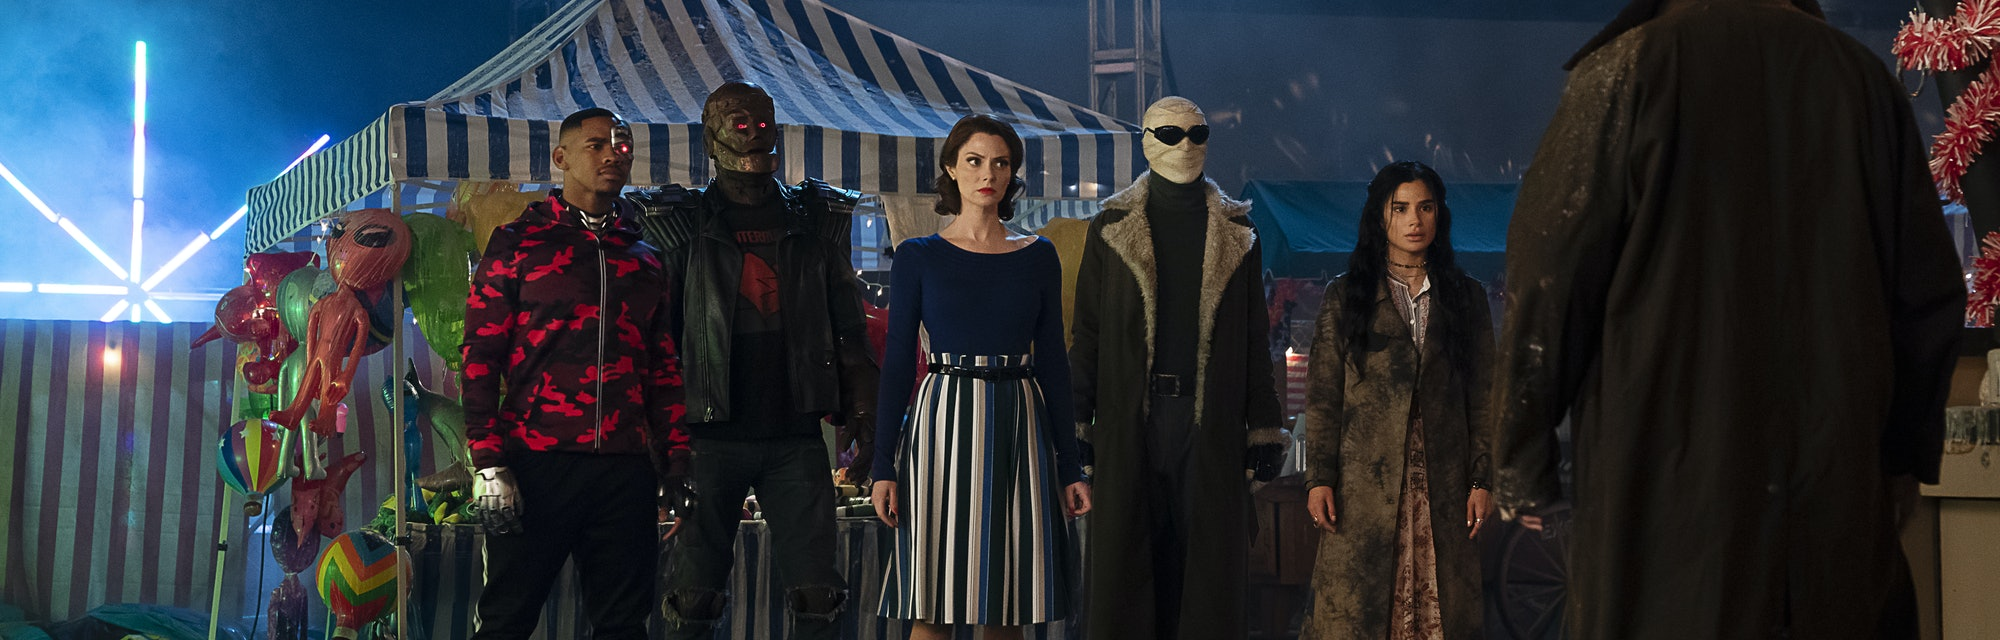 Doom Patrol Season 3 Release Date Trailer Cast Of Hbo Max S